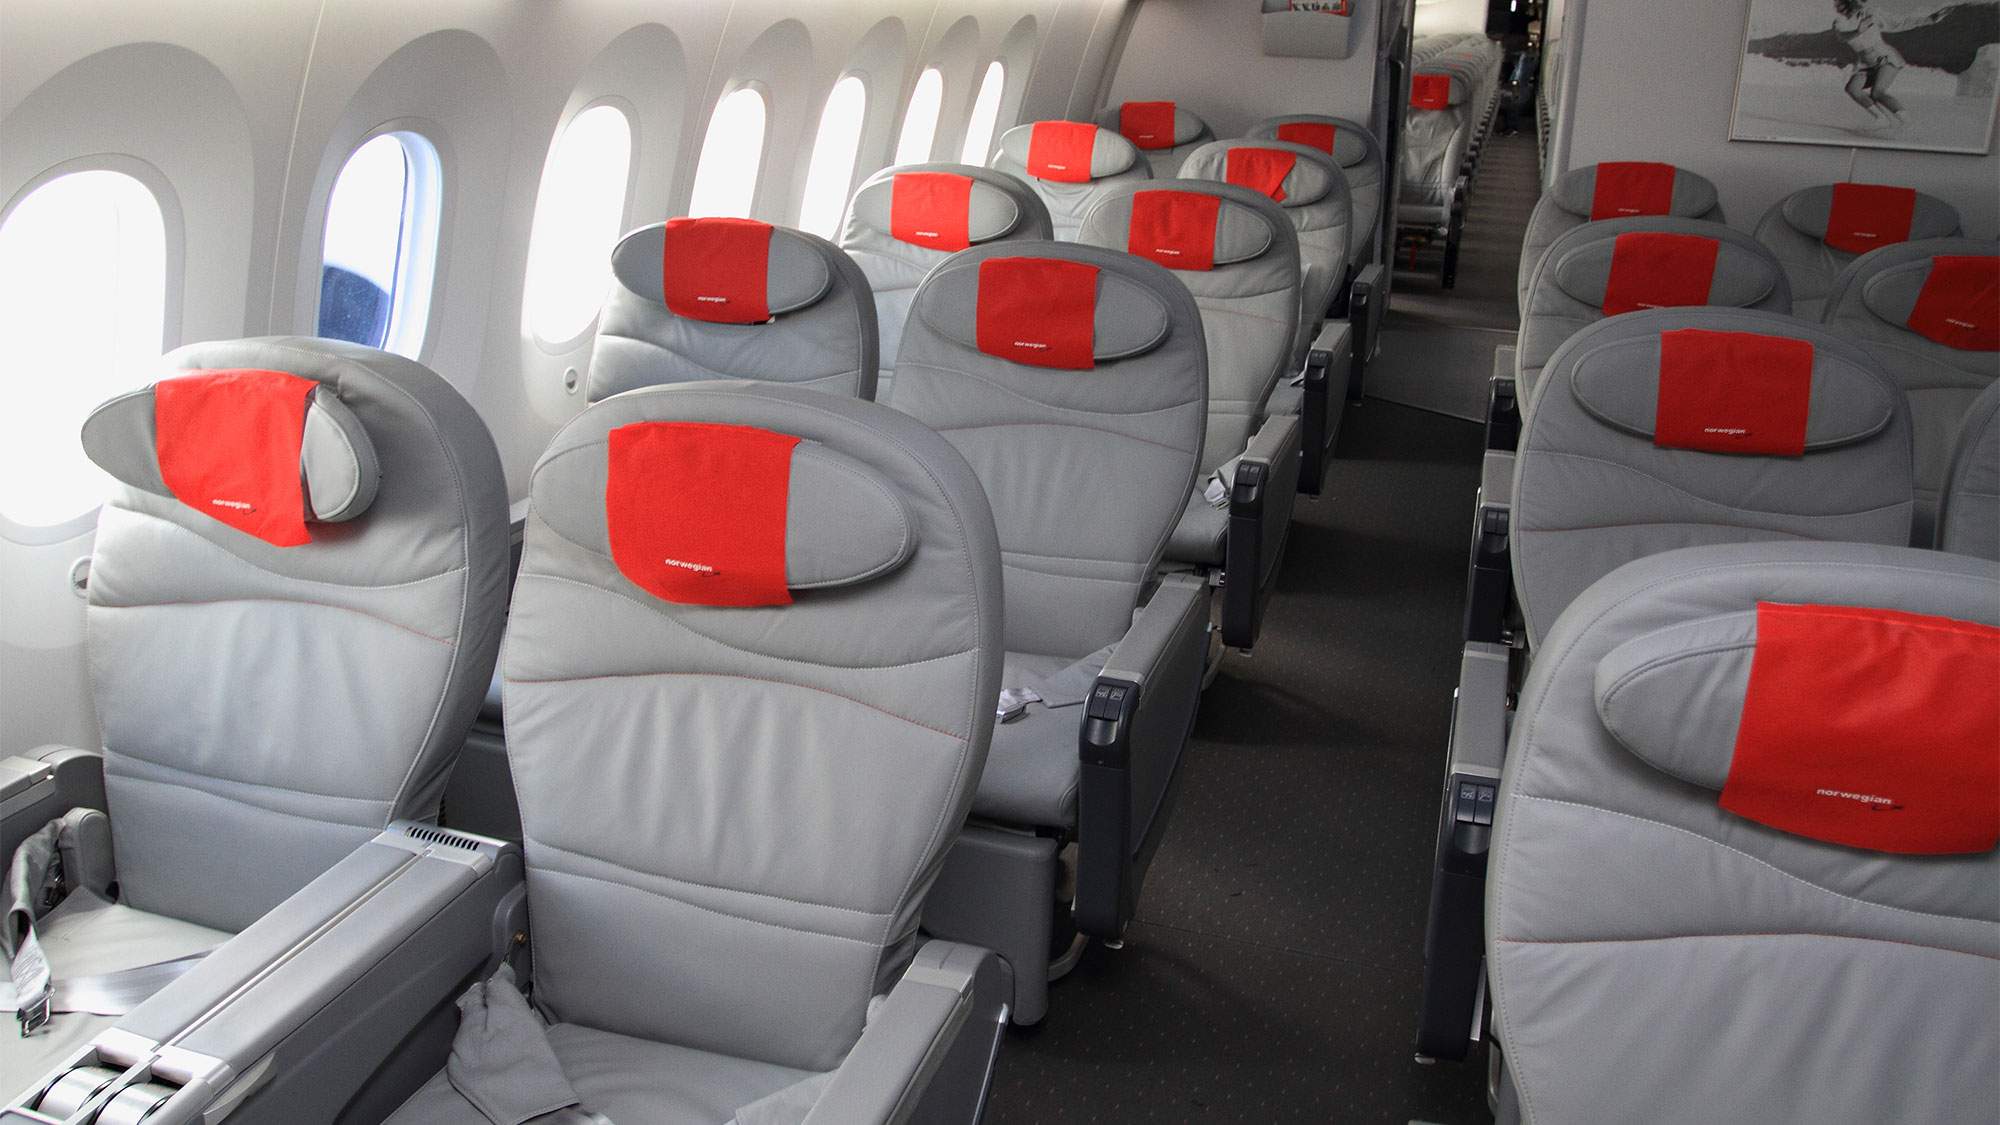 Attractive Norwegian Airu0027s Premium Cabin On Its Current Dreamliner Aircraft.